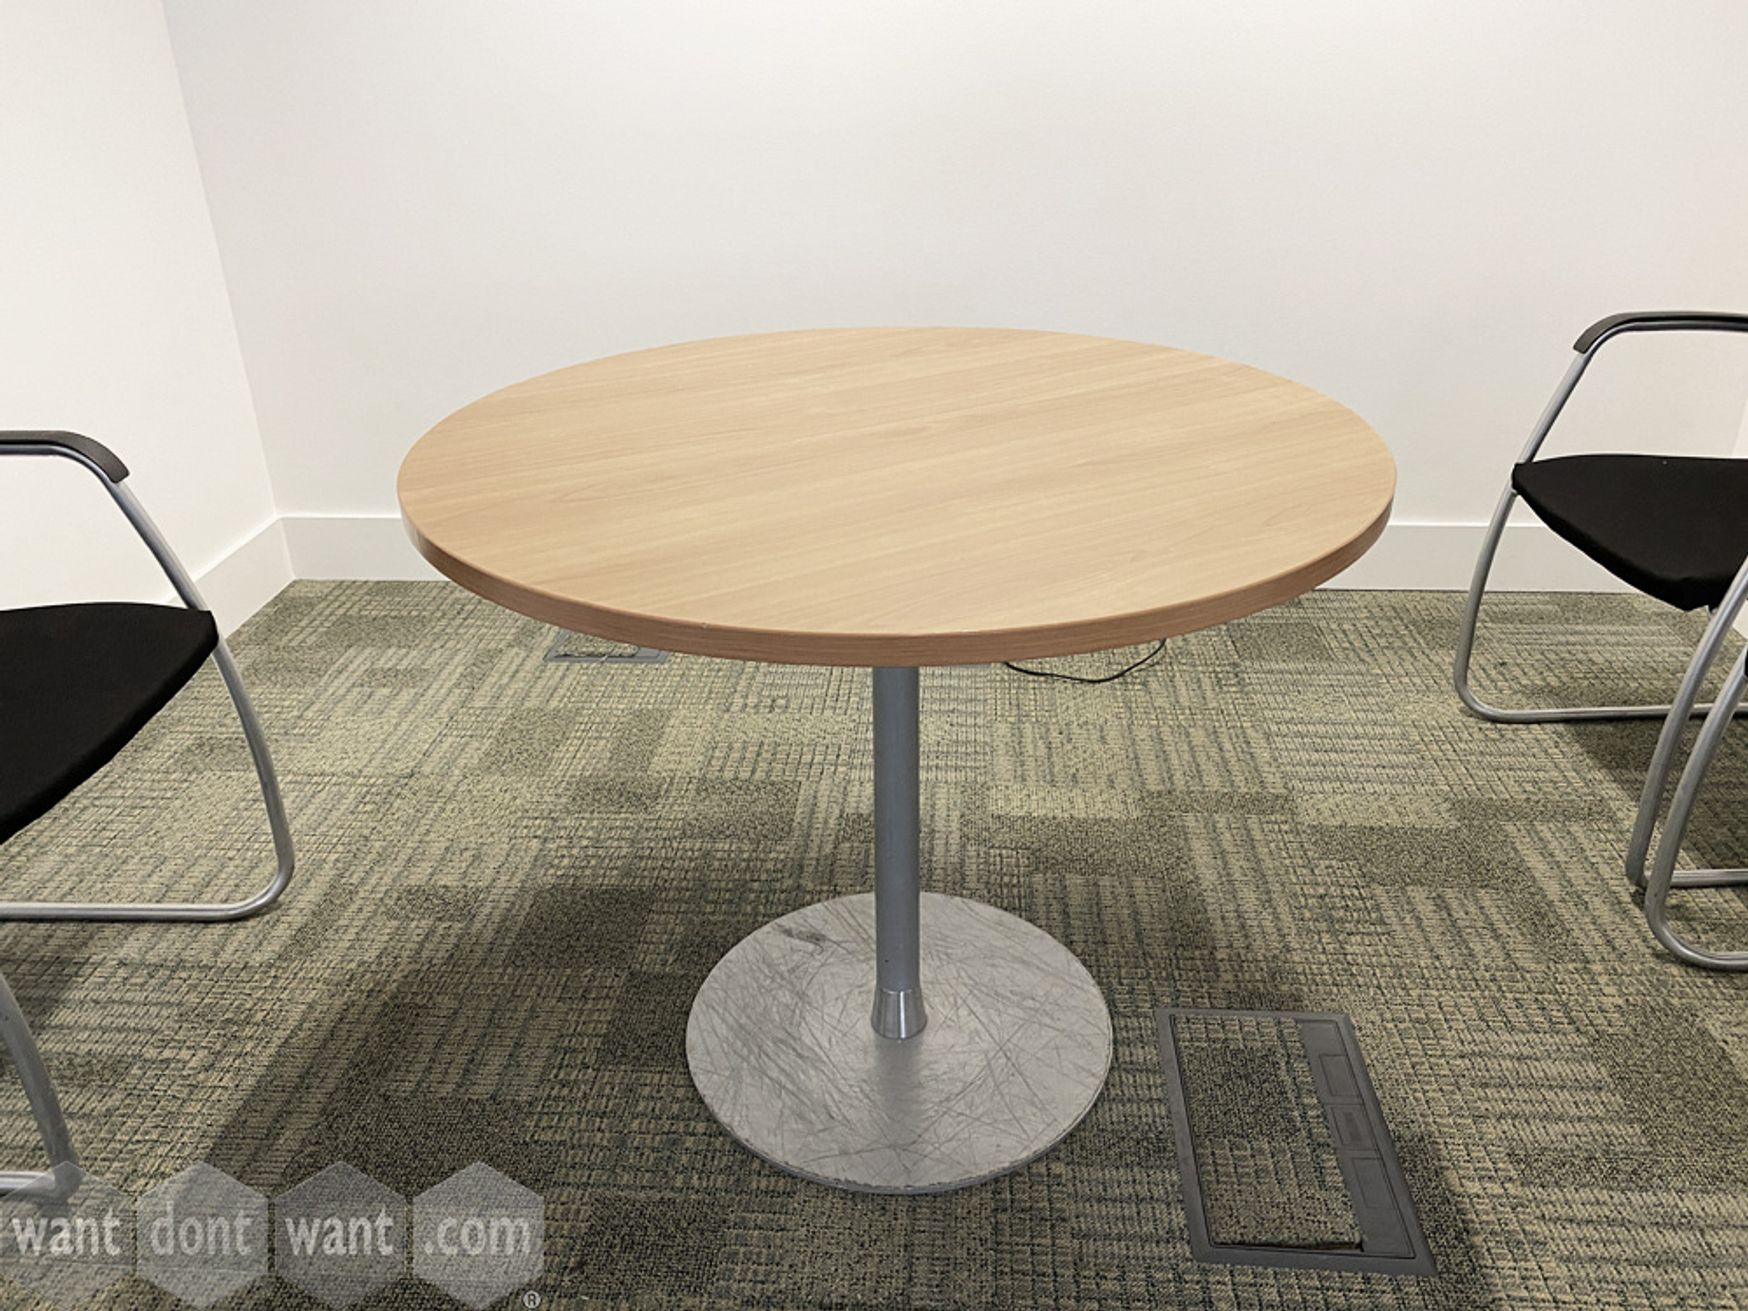 Used circular meeting table with oak top and silver column base (800mm Dia)